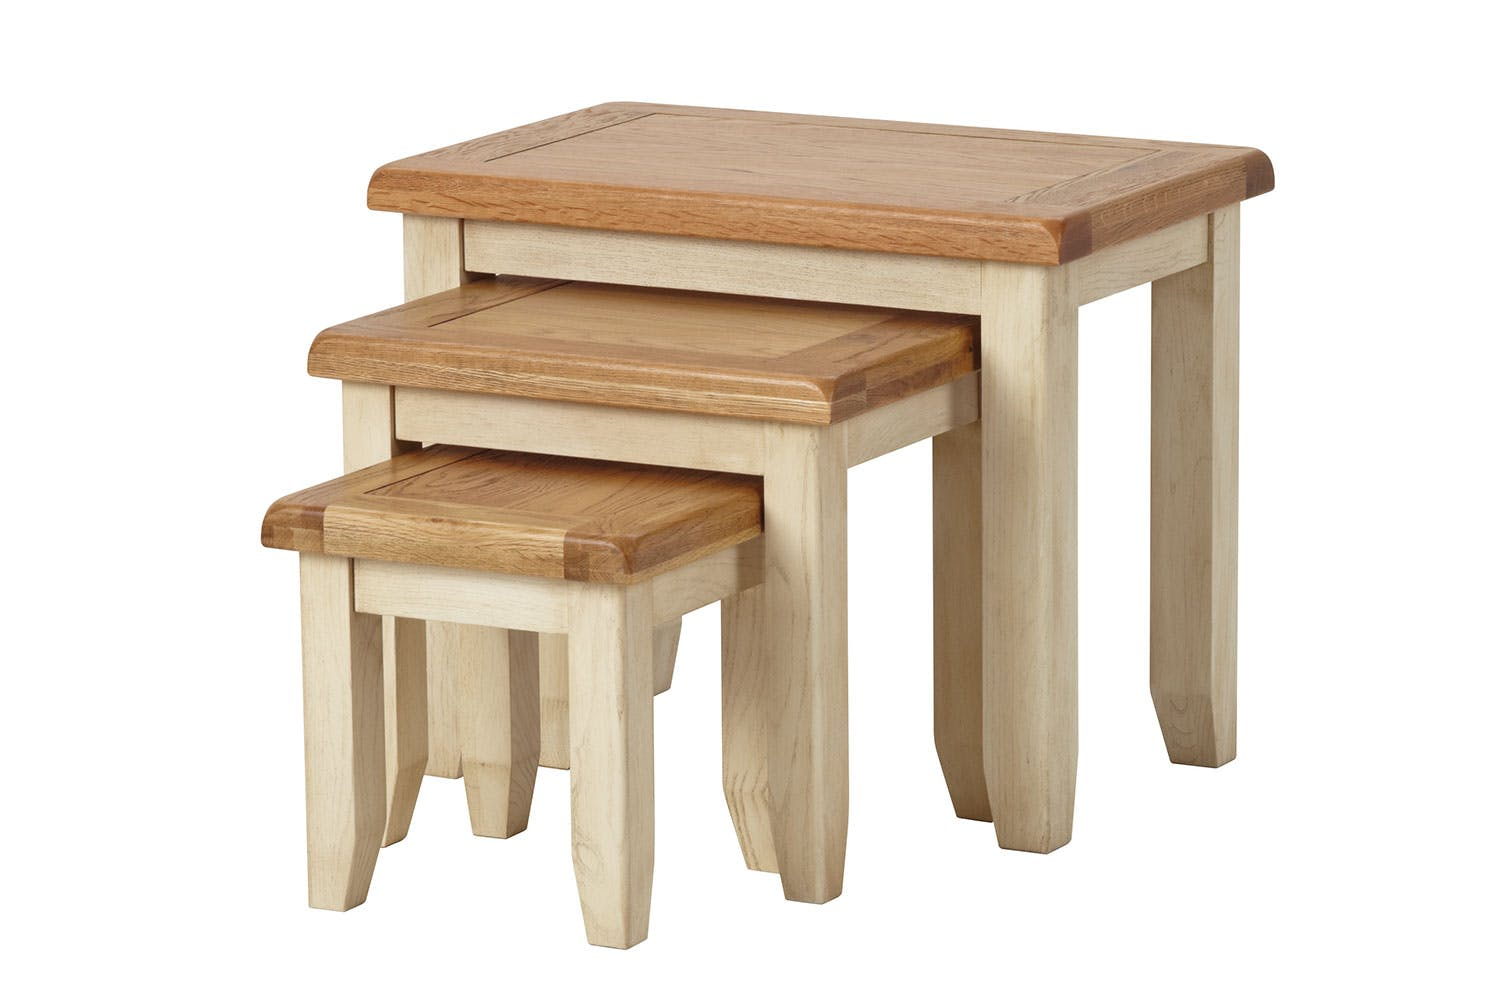 Mansfield nest of 3 tables by debonaire furniture harvey norman mansfield nest of 3 tables by debonaire furniture harvey norman new zealand watchthetrailerfo